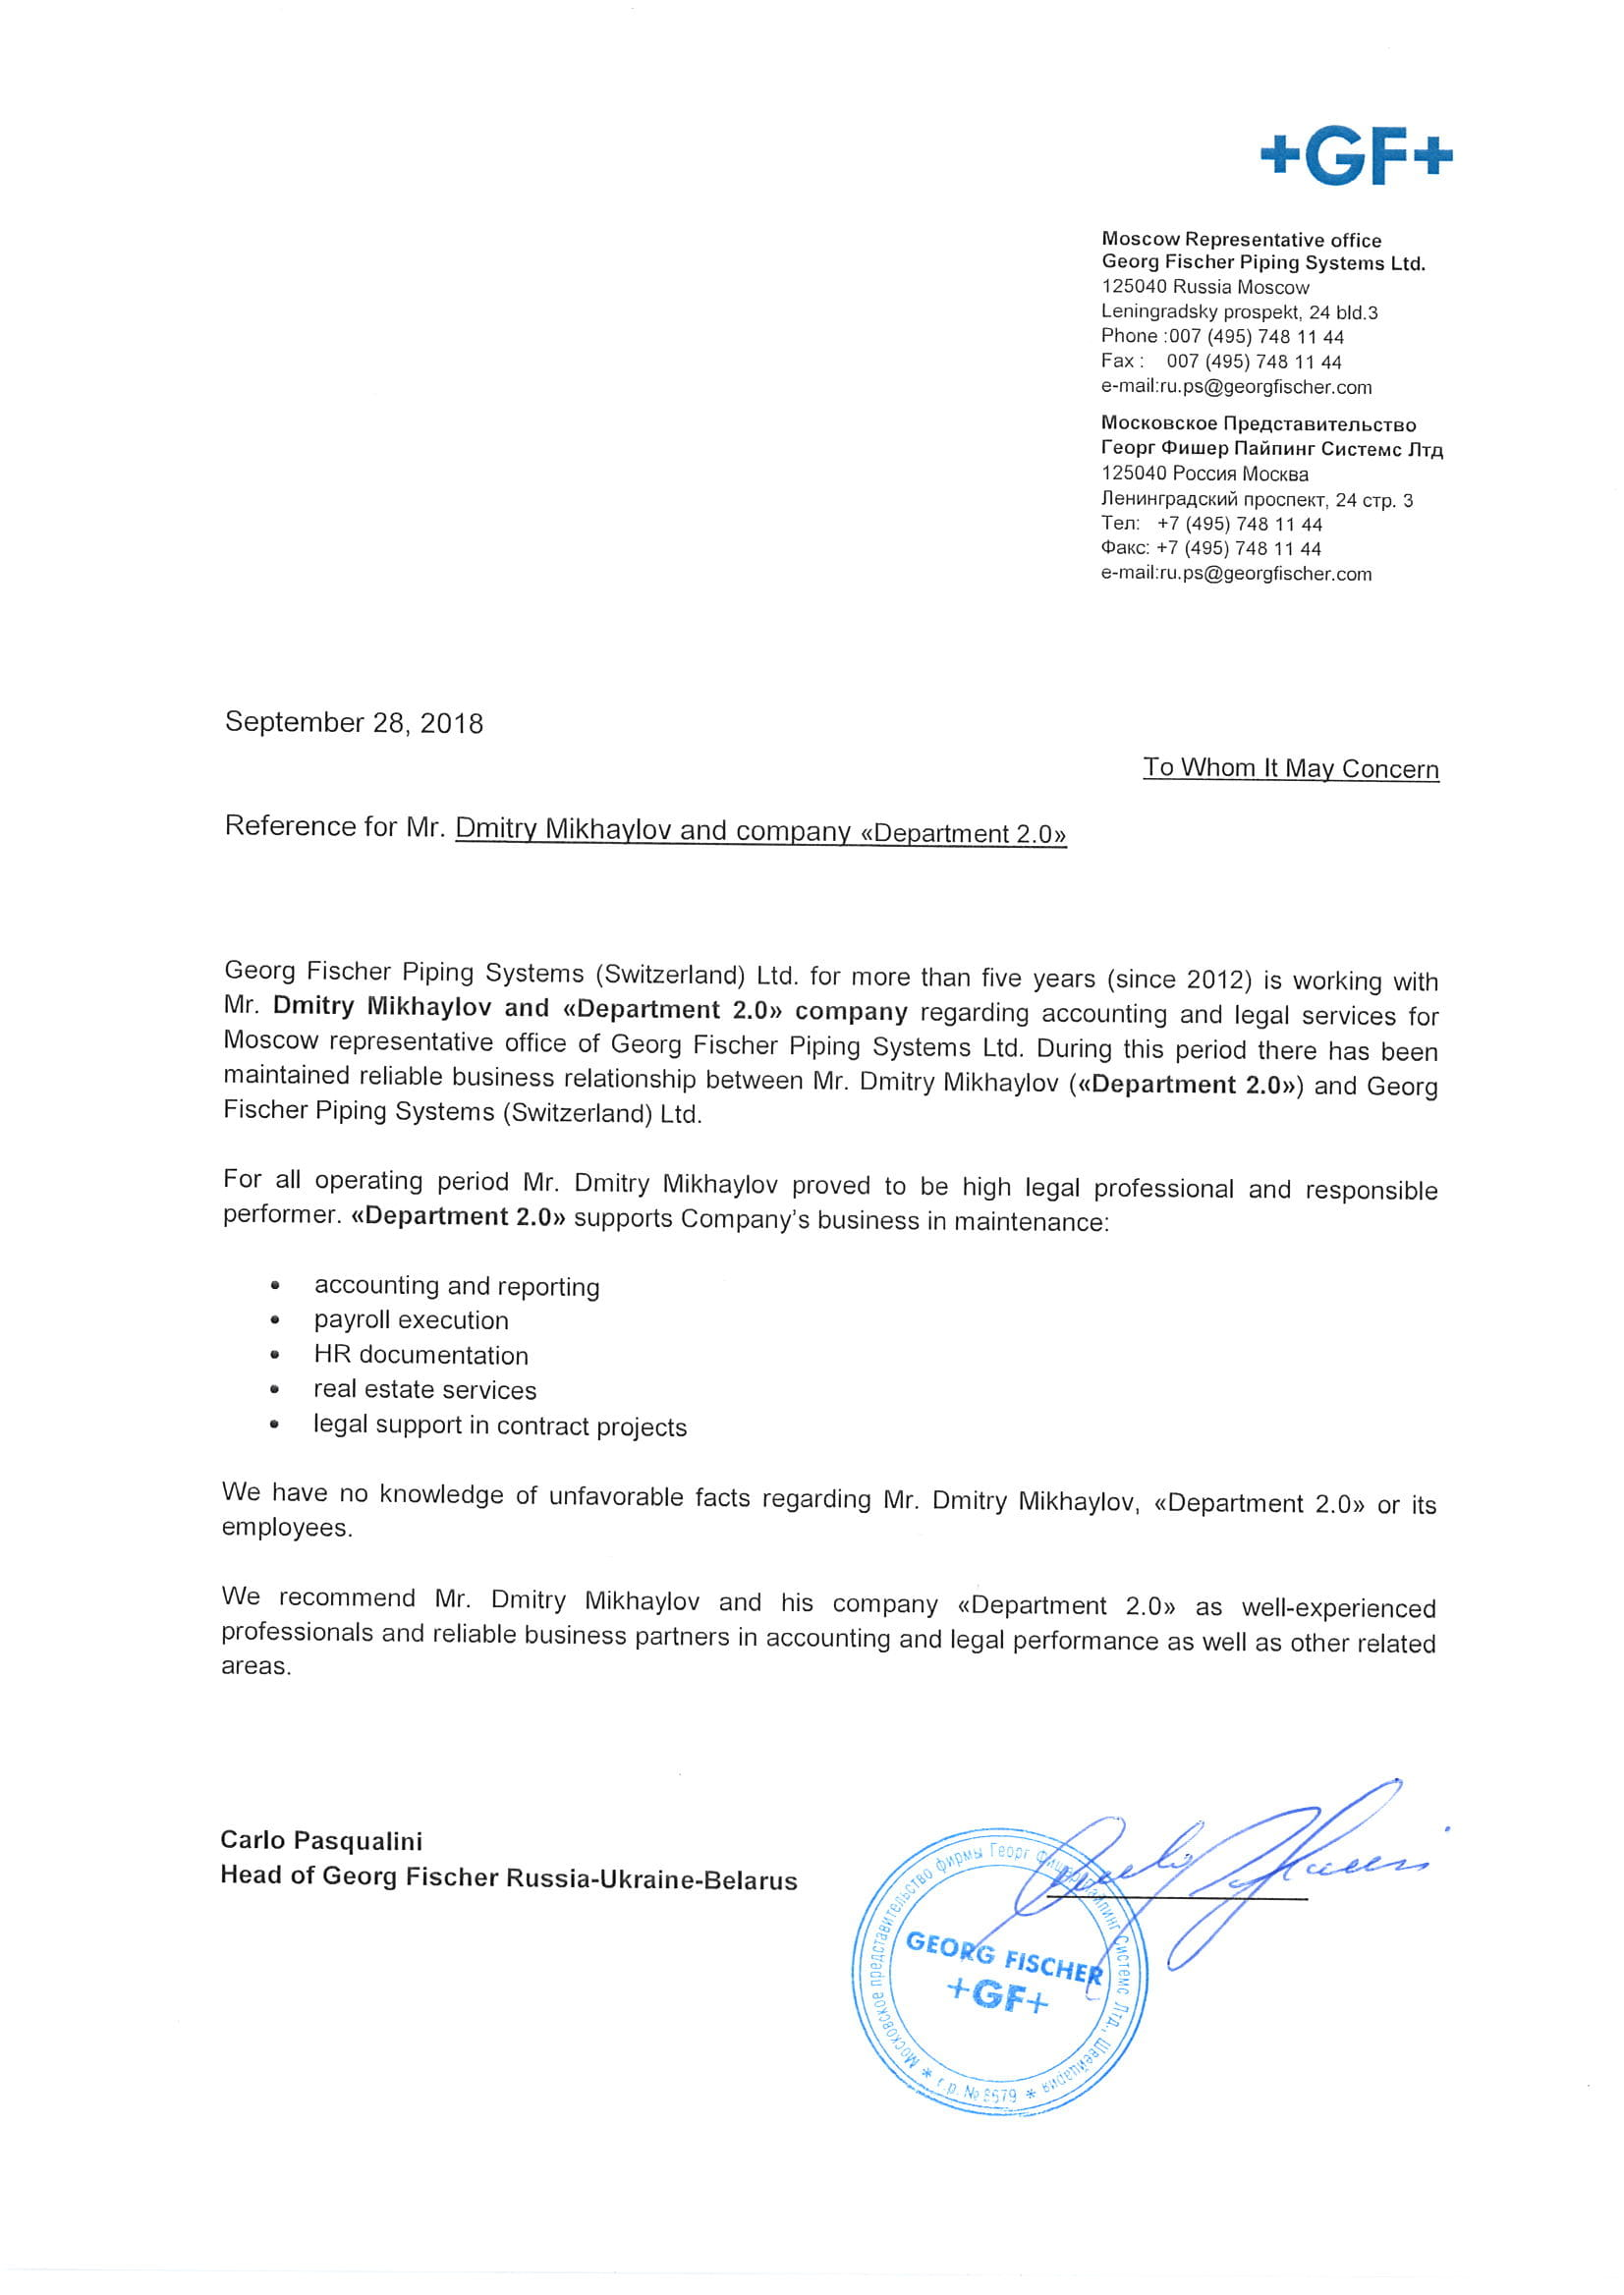 Reference letter GF_2018_signed